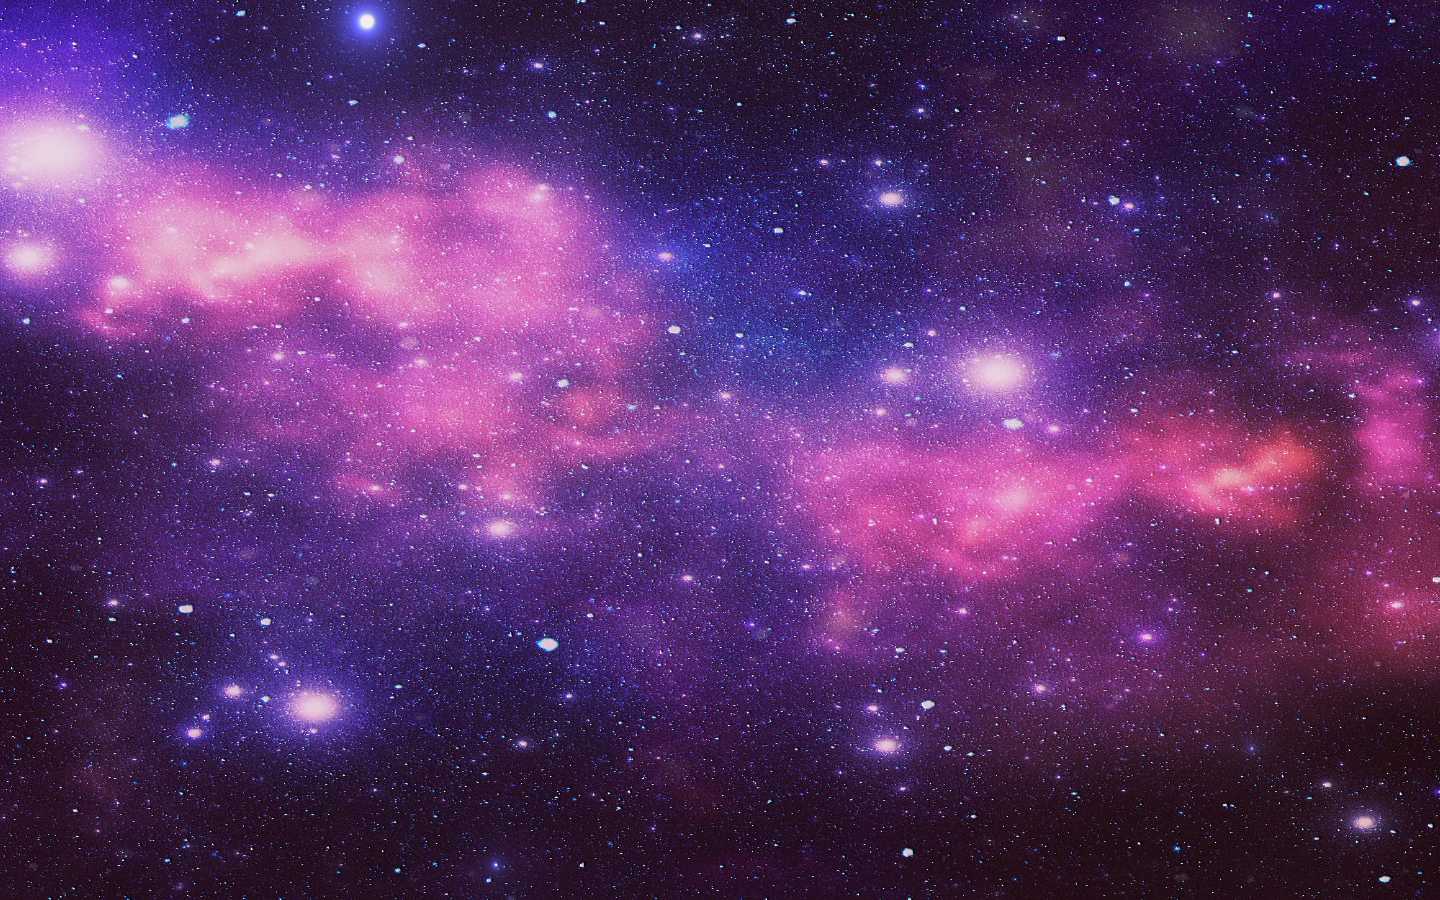 Galaxy Tumblr wallpaper | 1440x900 | #45083